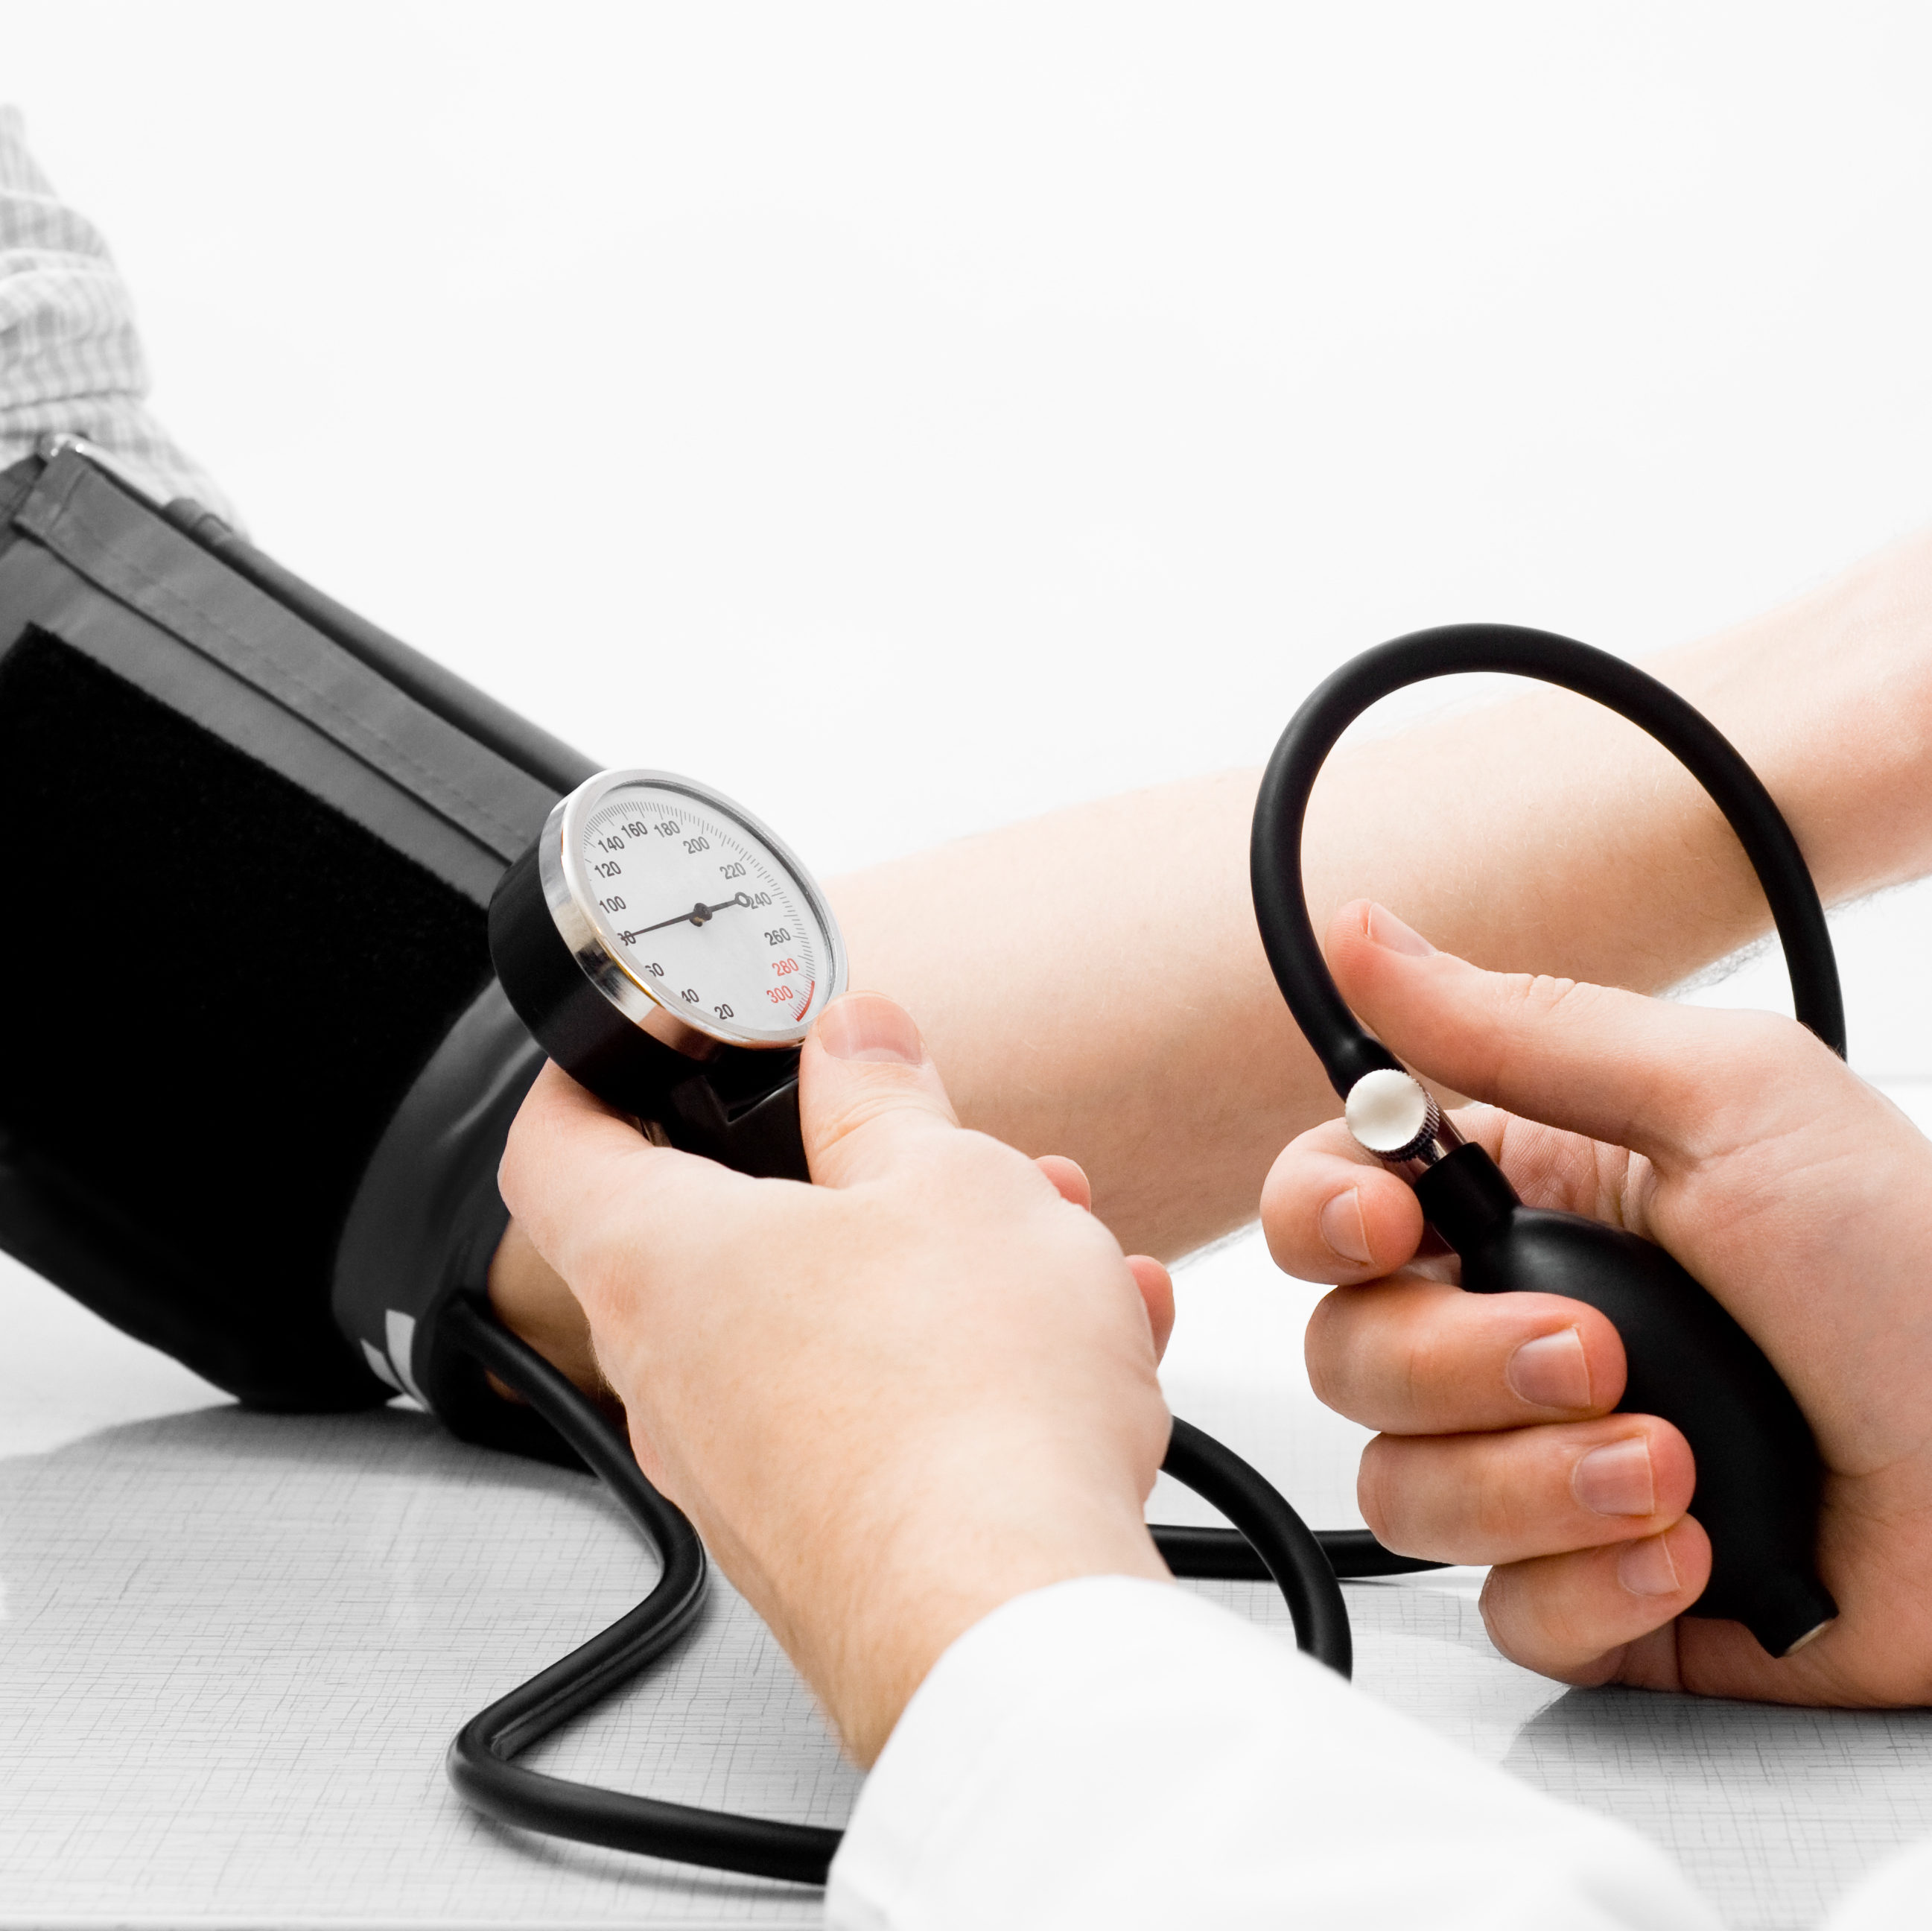 What's Raising Your Blood Pressure?